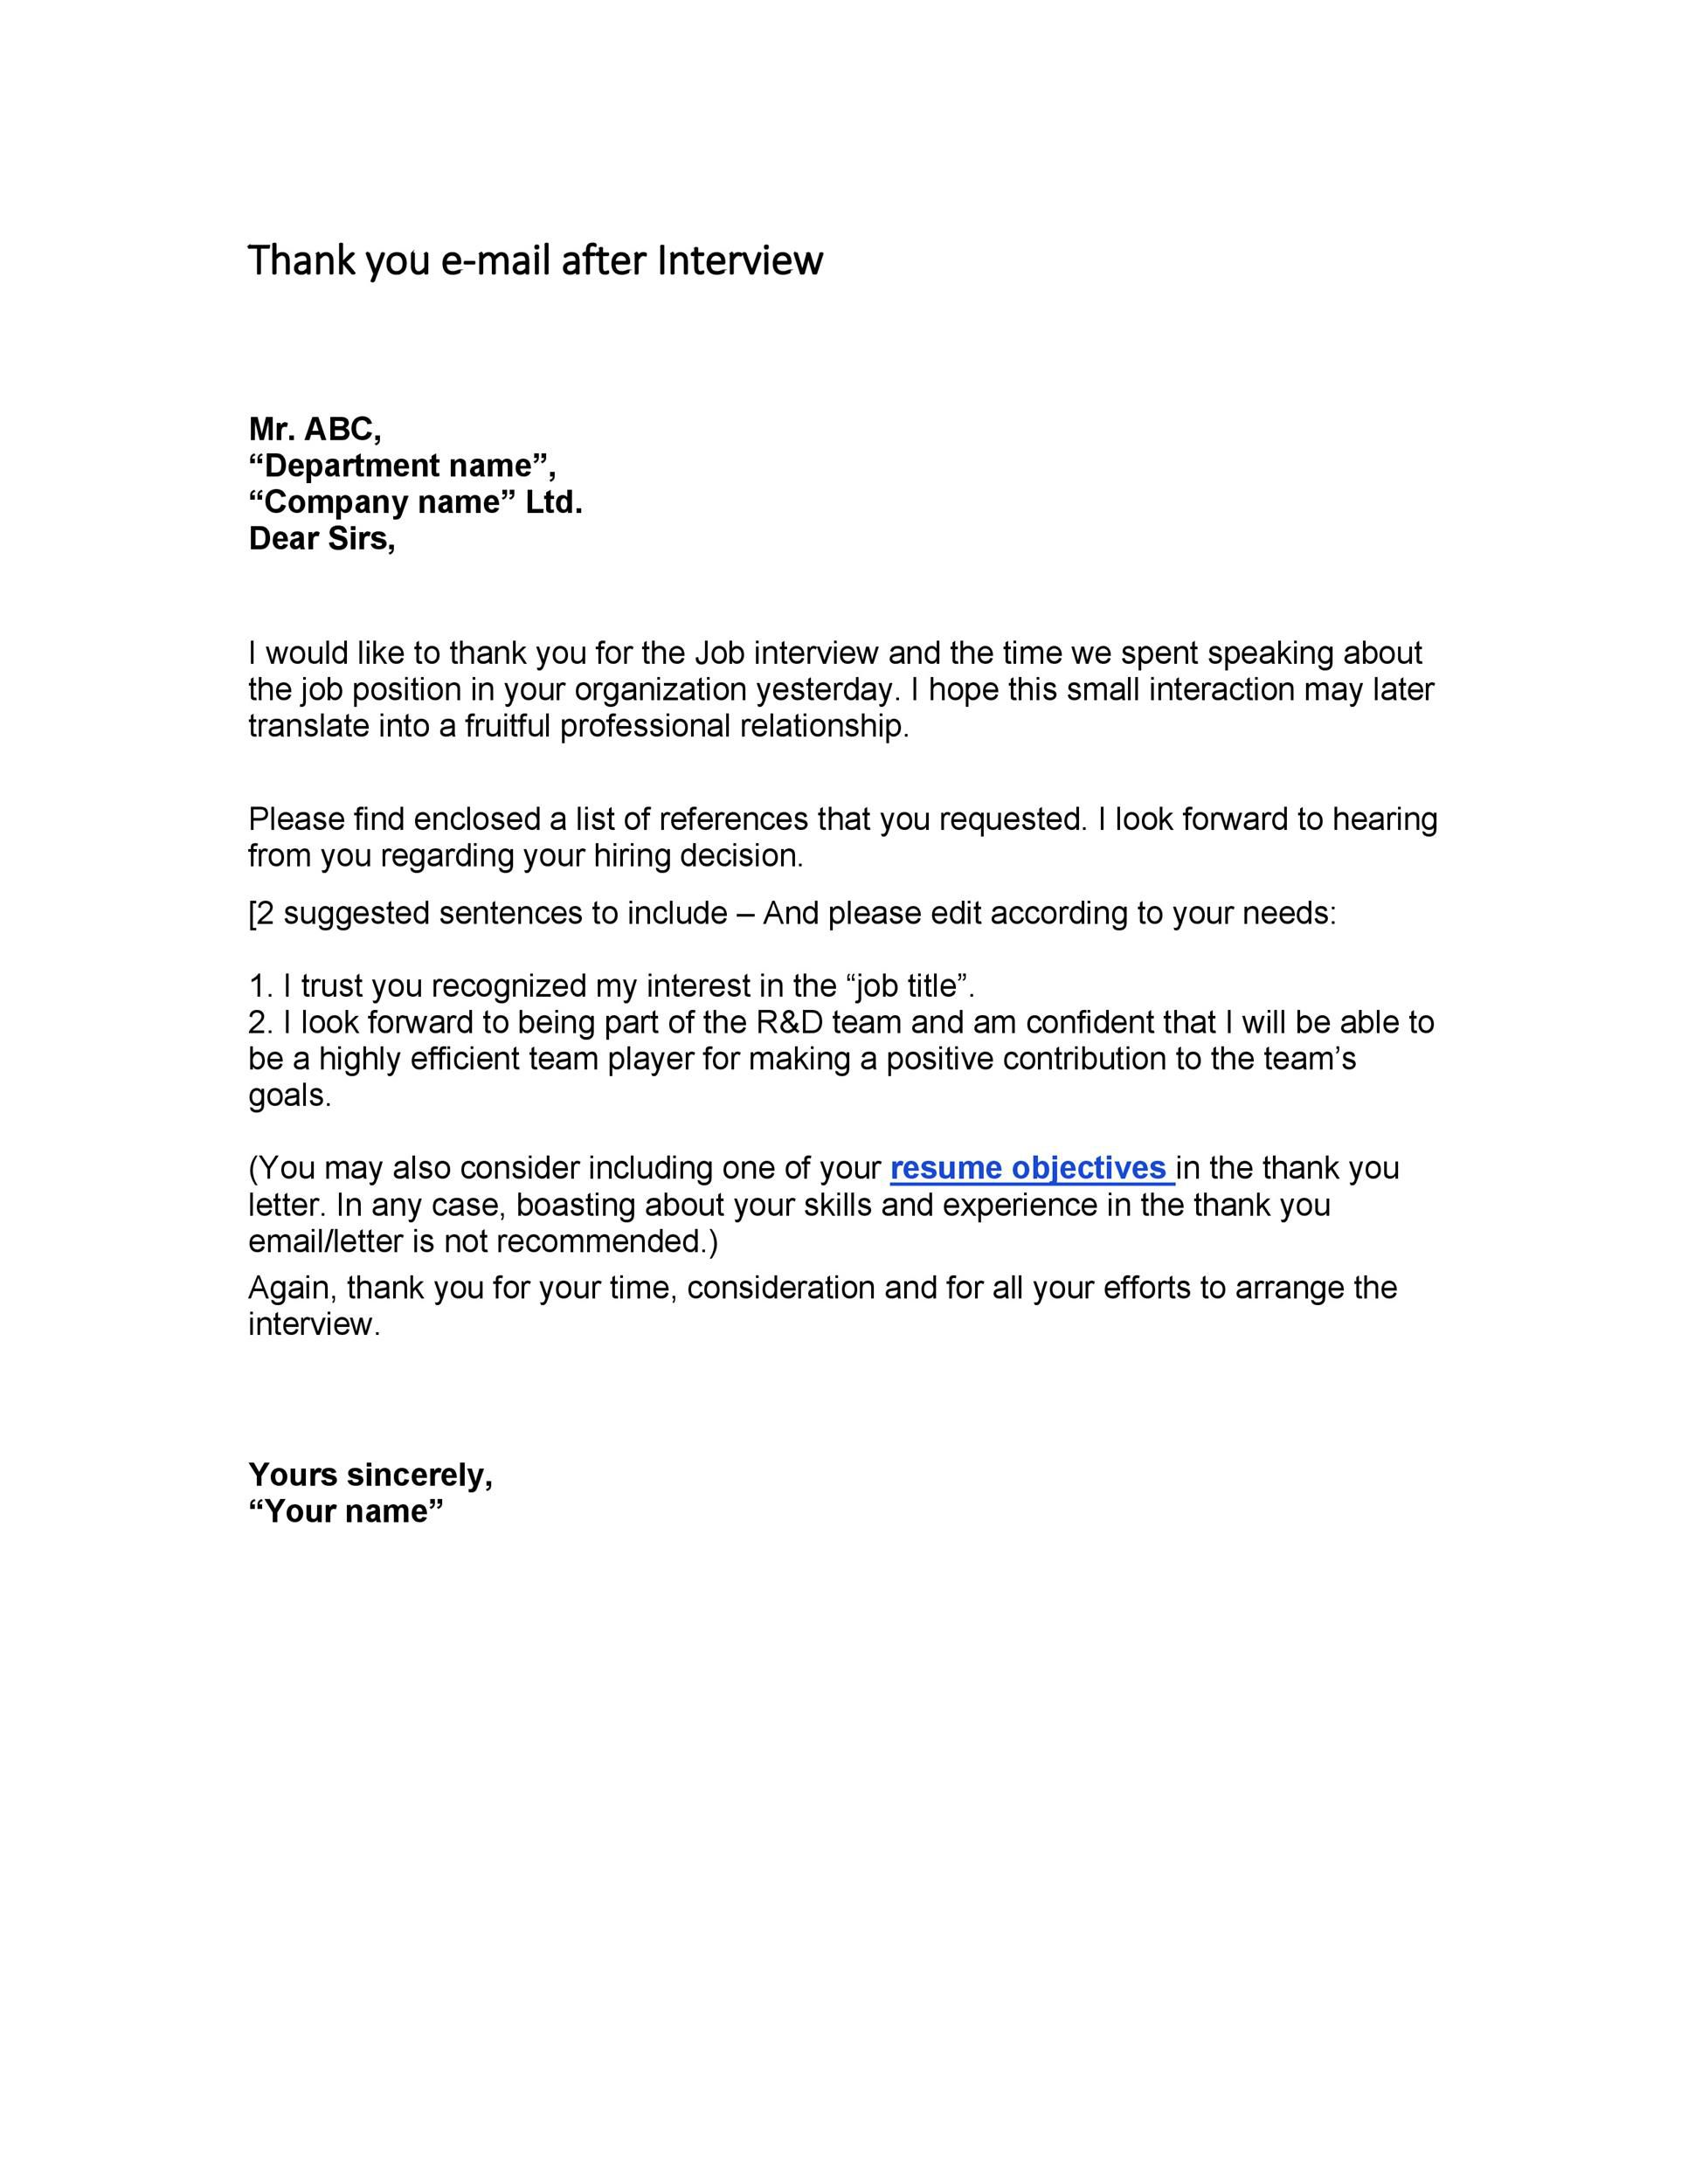 008 Sensational Interview Thank You Email Template High Definition  After Phone Sample 2nd PostFull